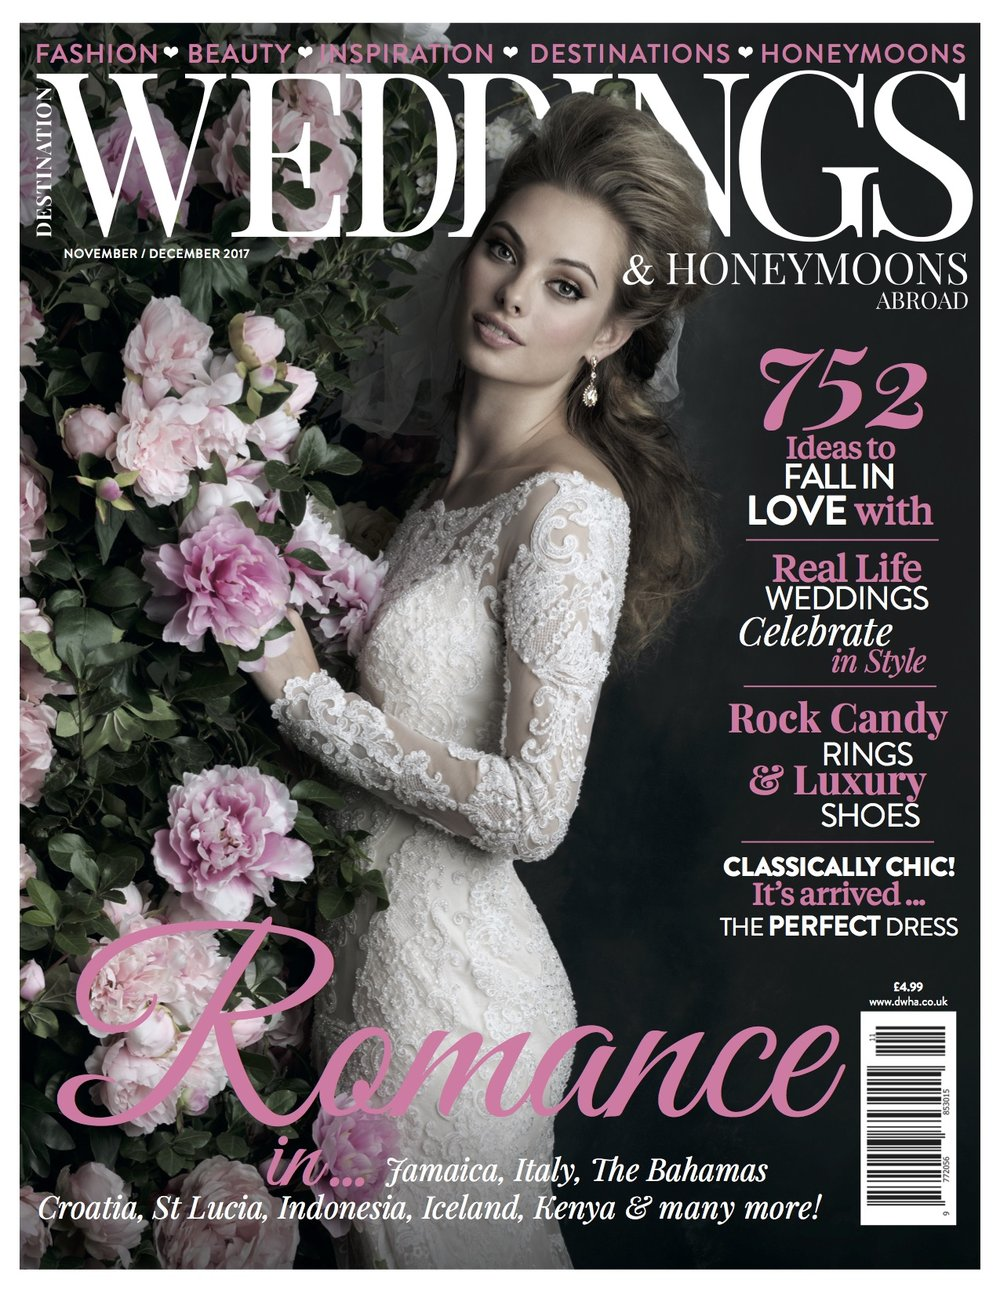 Destination Weddings and Honeymoon Magazine.jpg